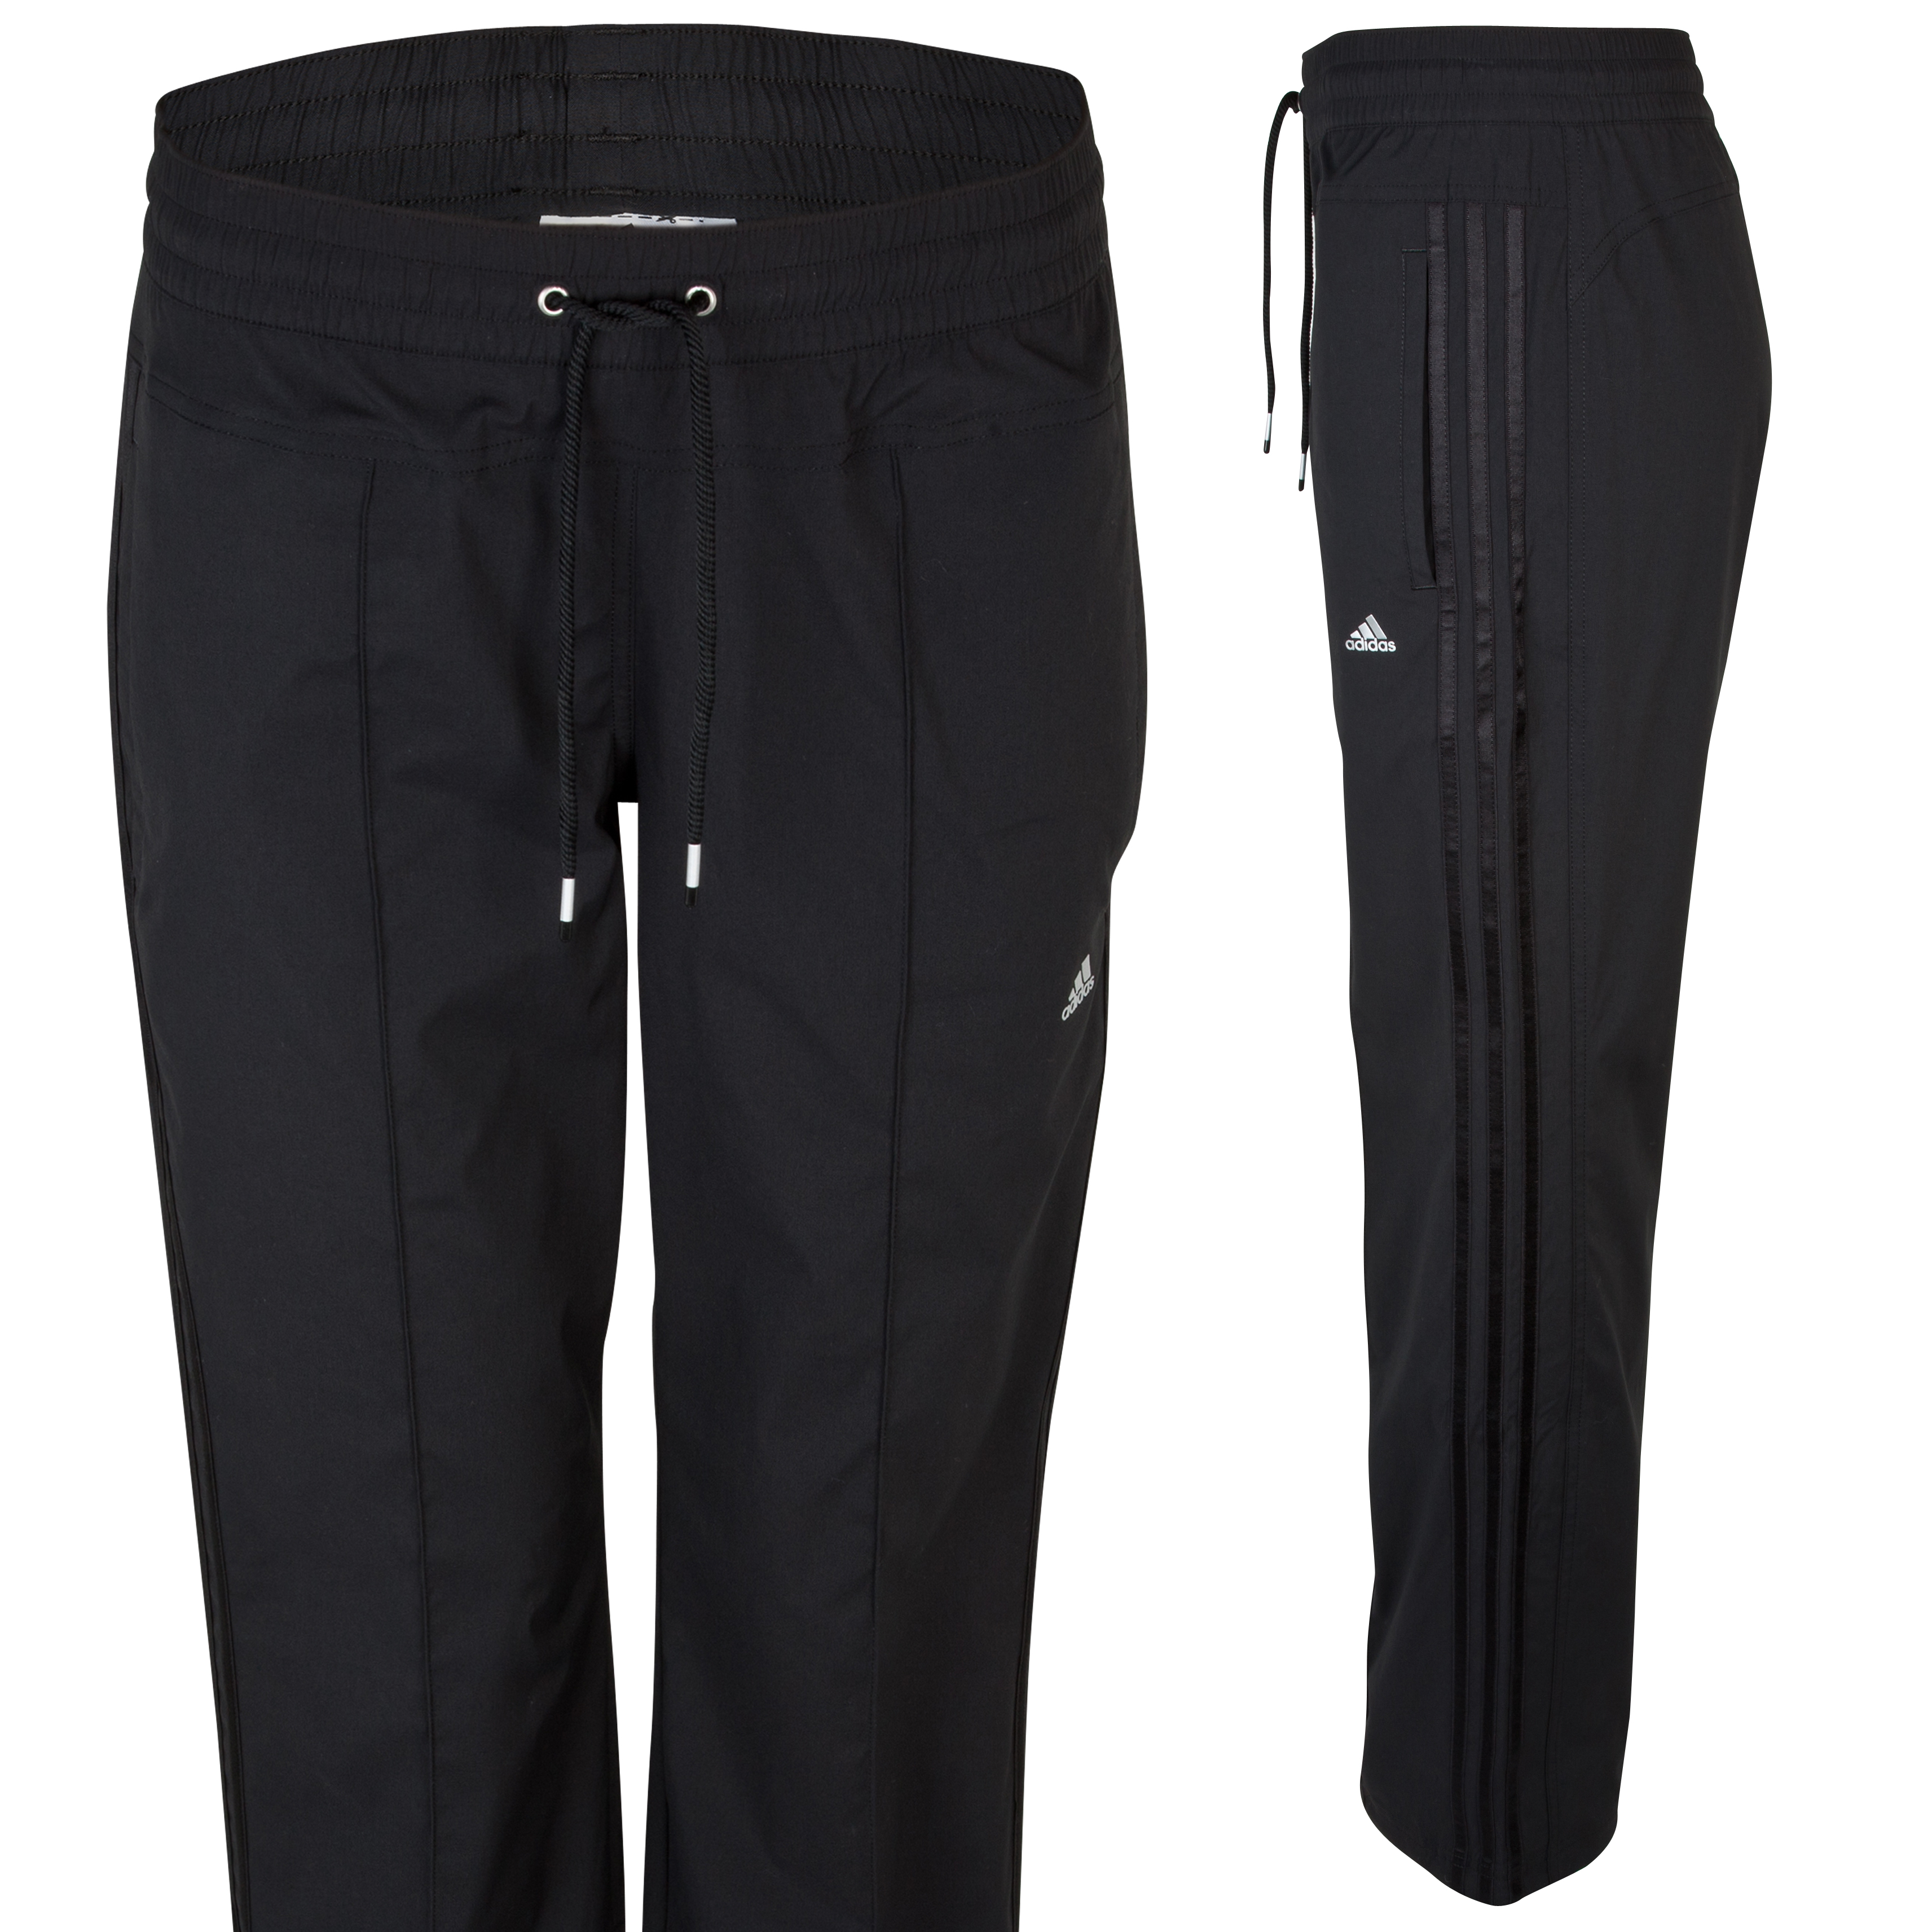 Adidas Climacool Woven Straight Pant - Black/Black/Matte Silver - Womens